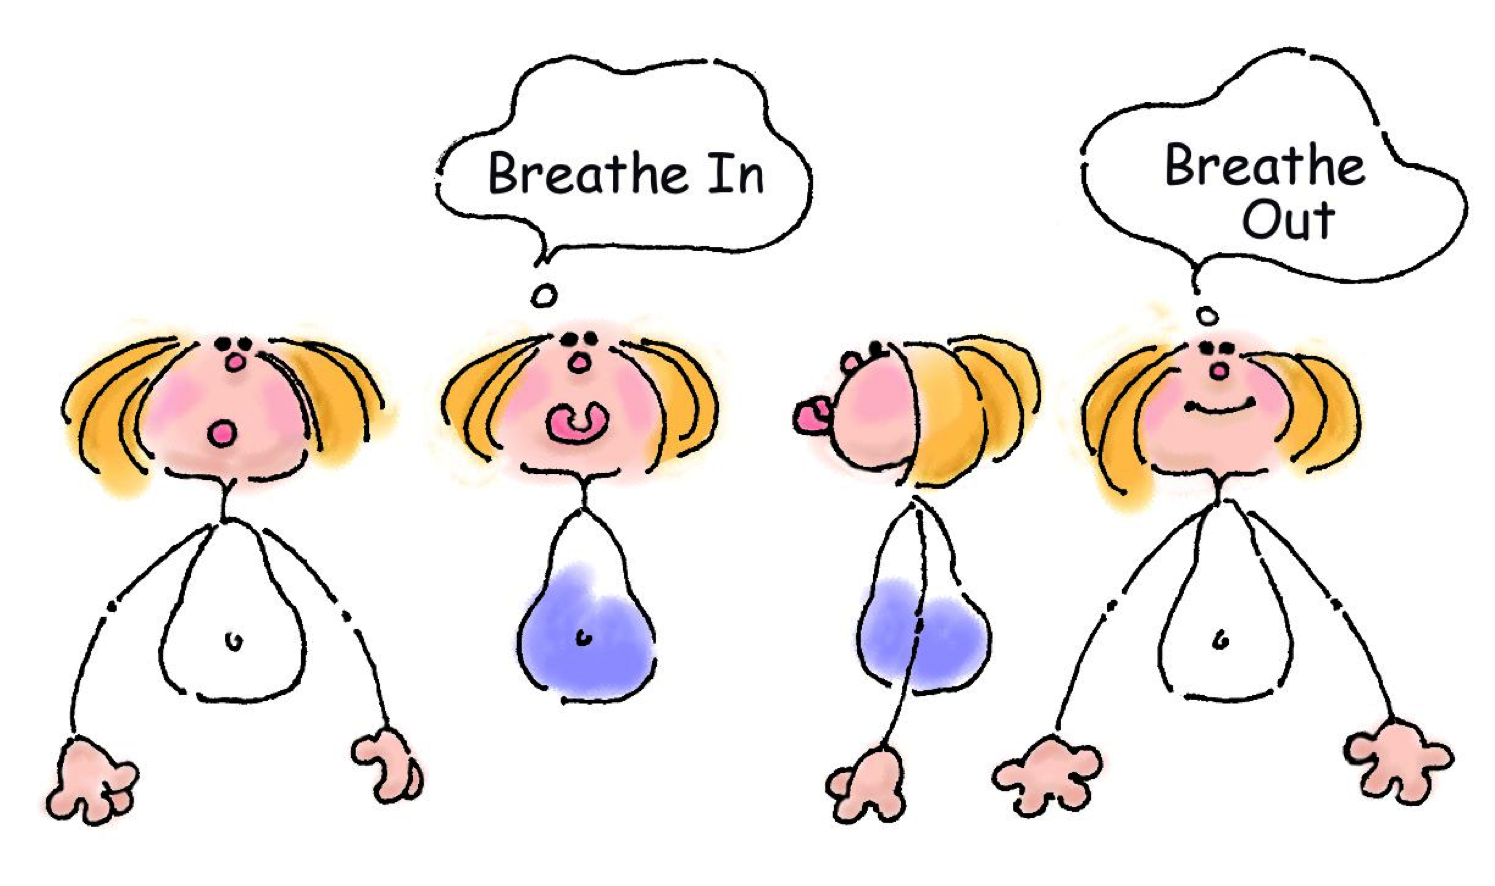 Breath clipart child breathing. Manage stress in the